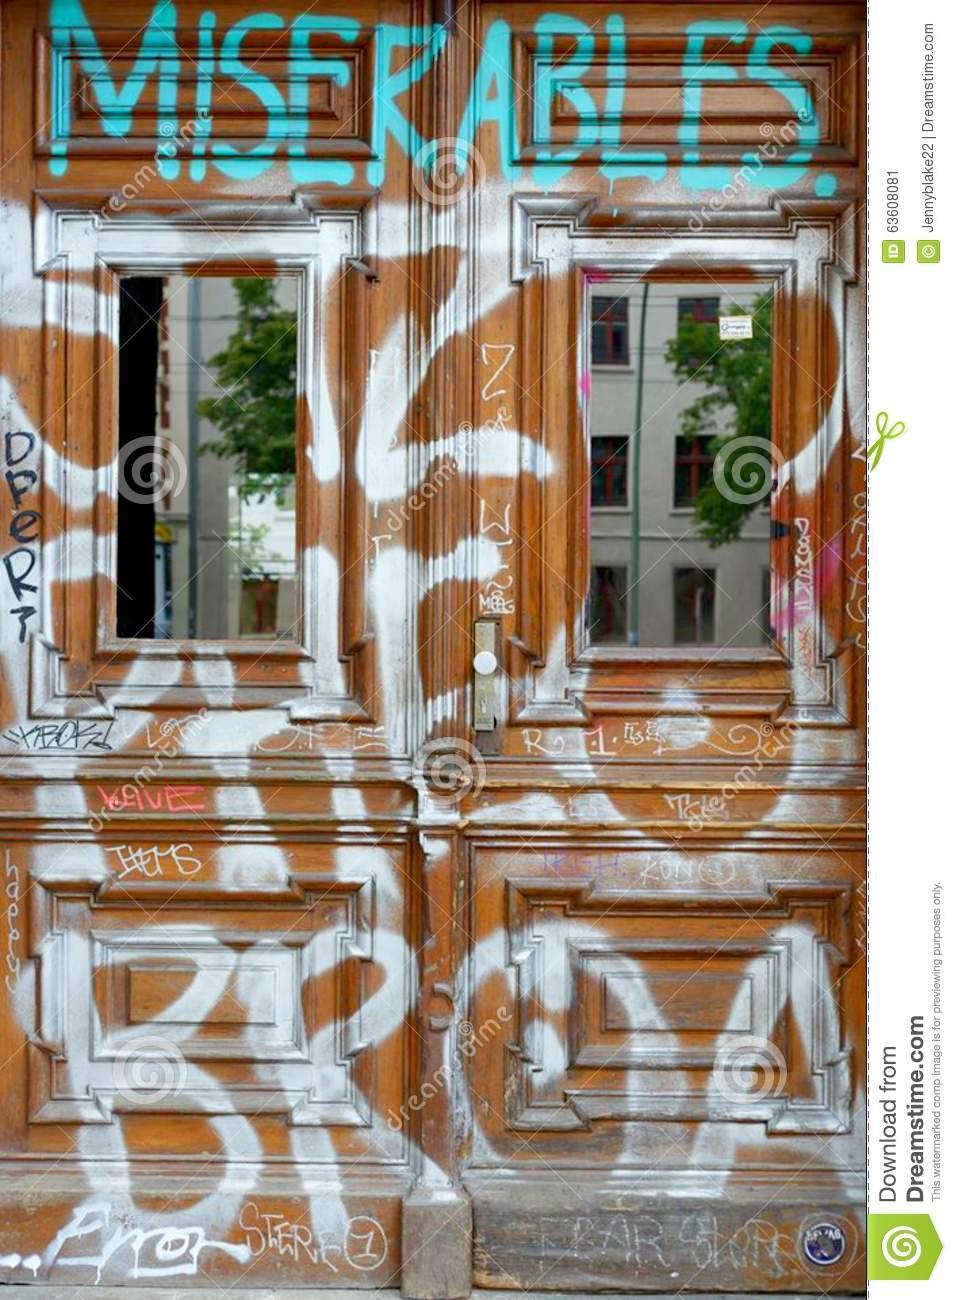 graffiti in berlin redaktionelles foto bild von kunst 63608081. Black Bedroom Furniture Sets. Home Design Ideas